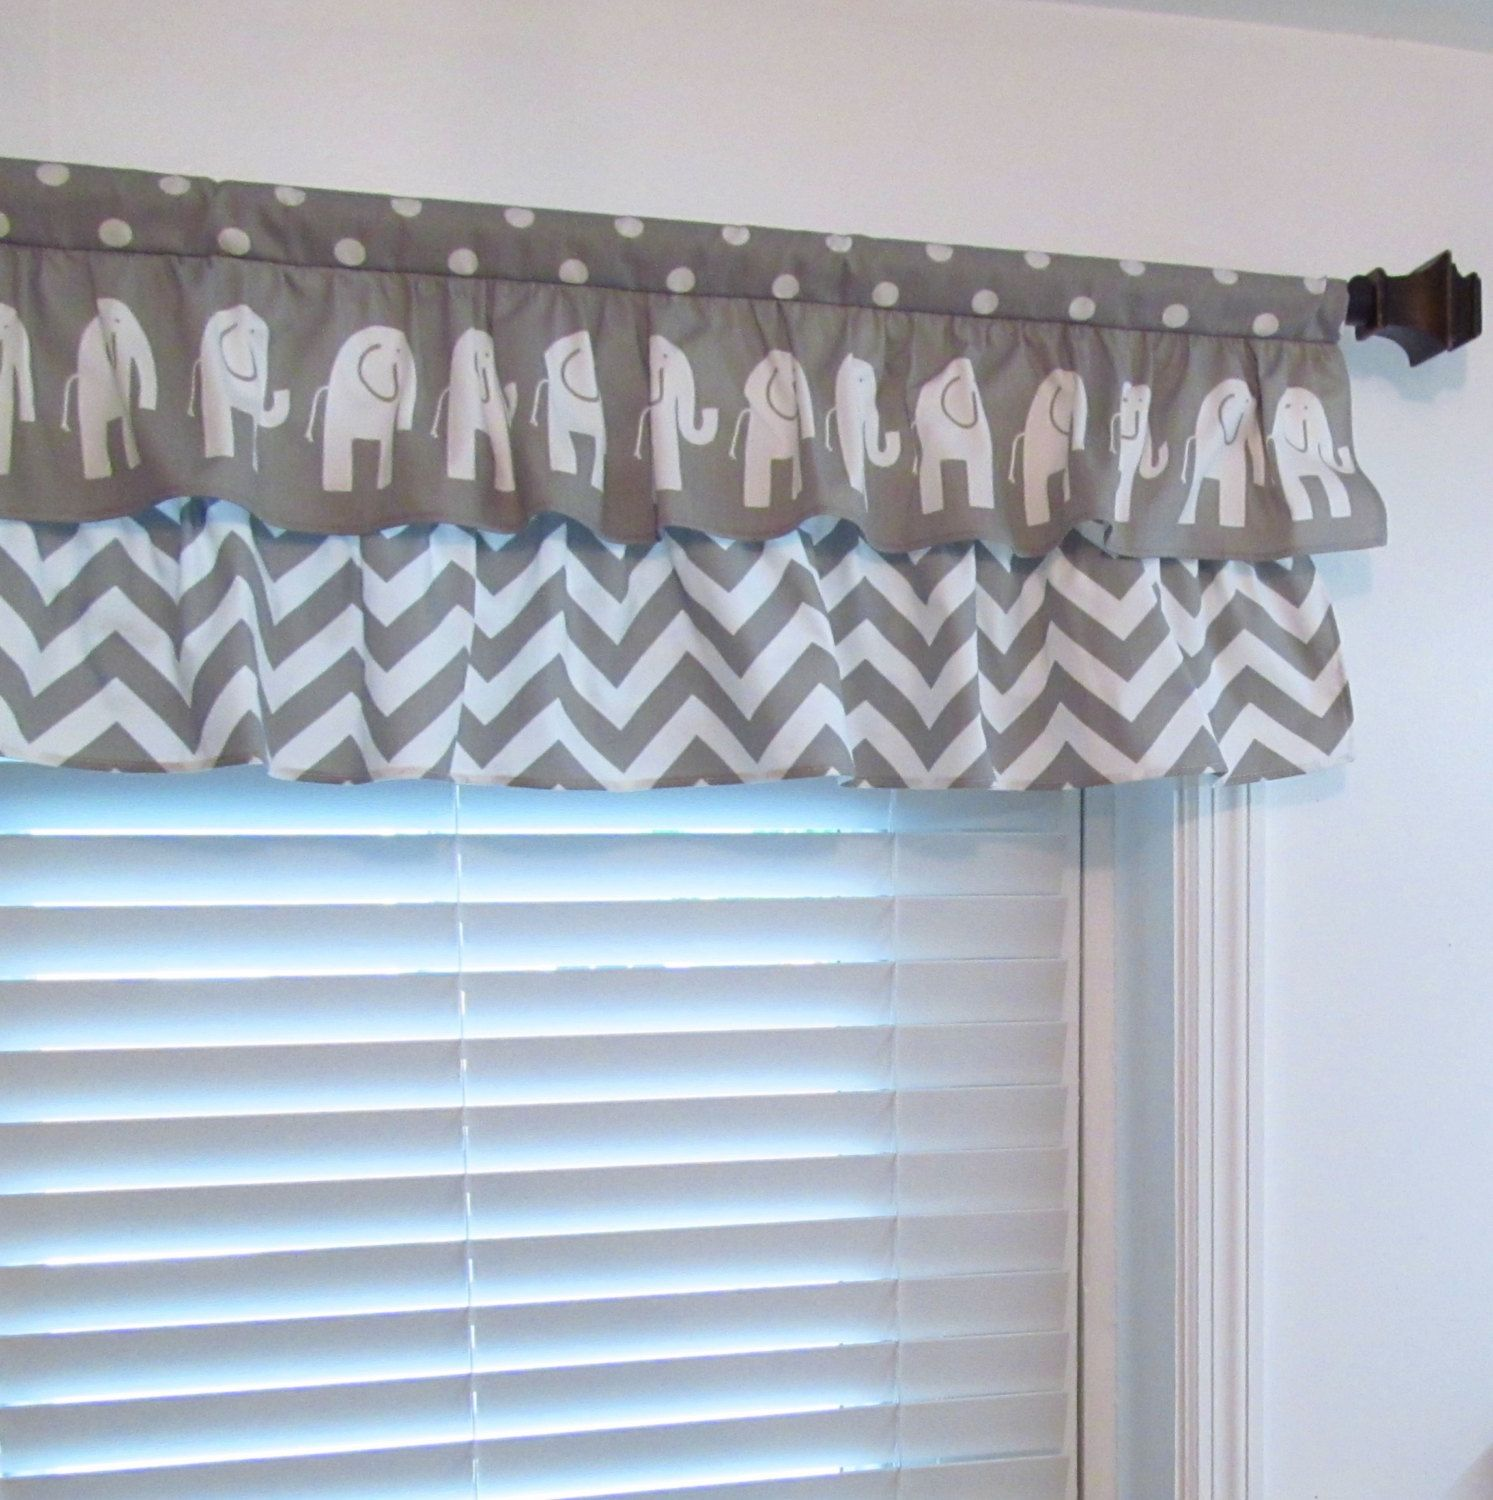 17 best ideas about chevron valance on pinterest | sewing curtains